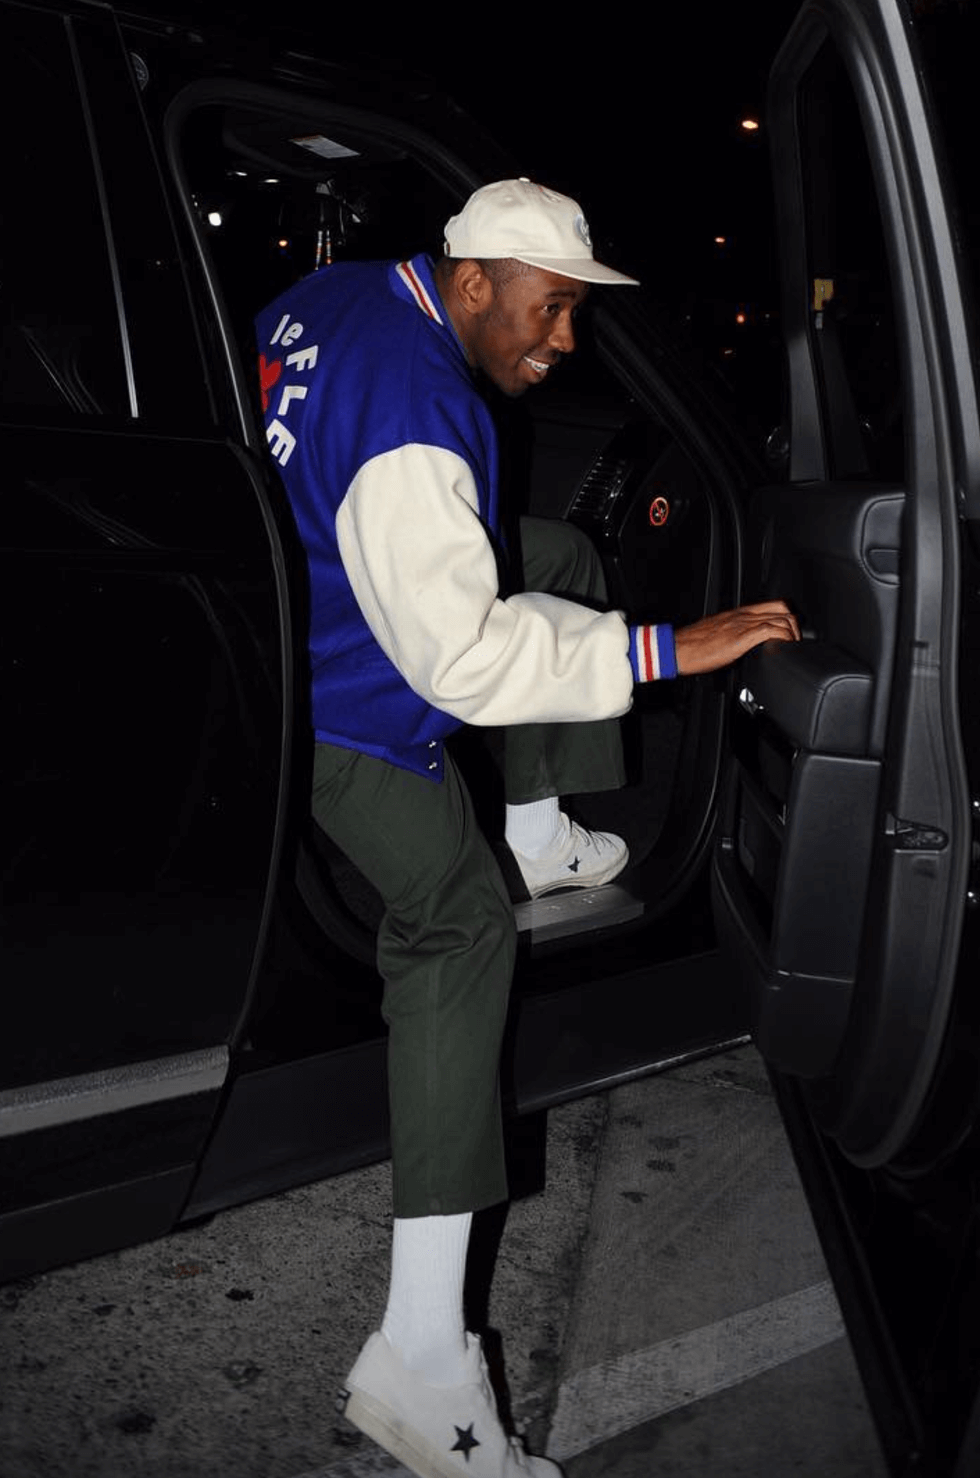 Tyler the Creator in the Converse One Star